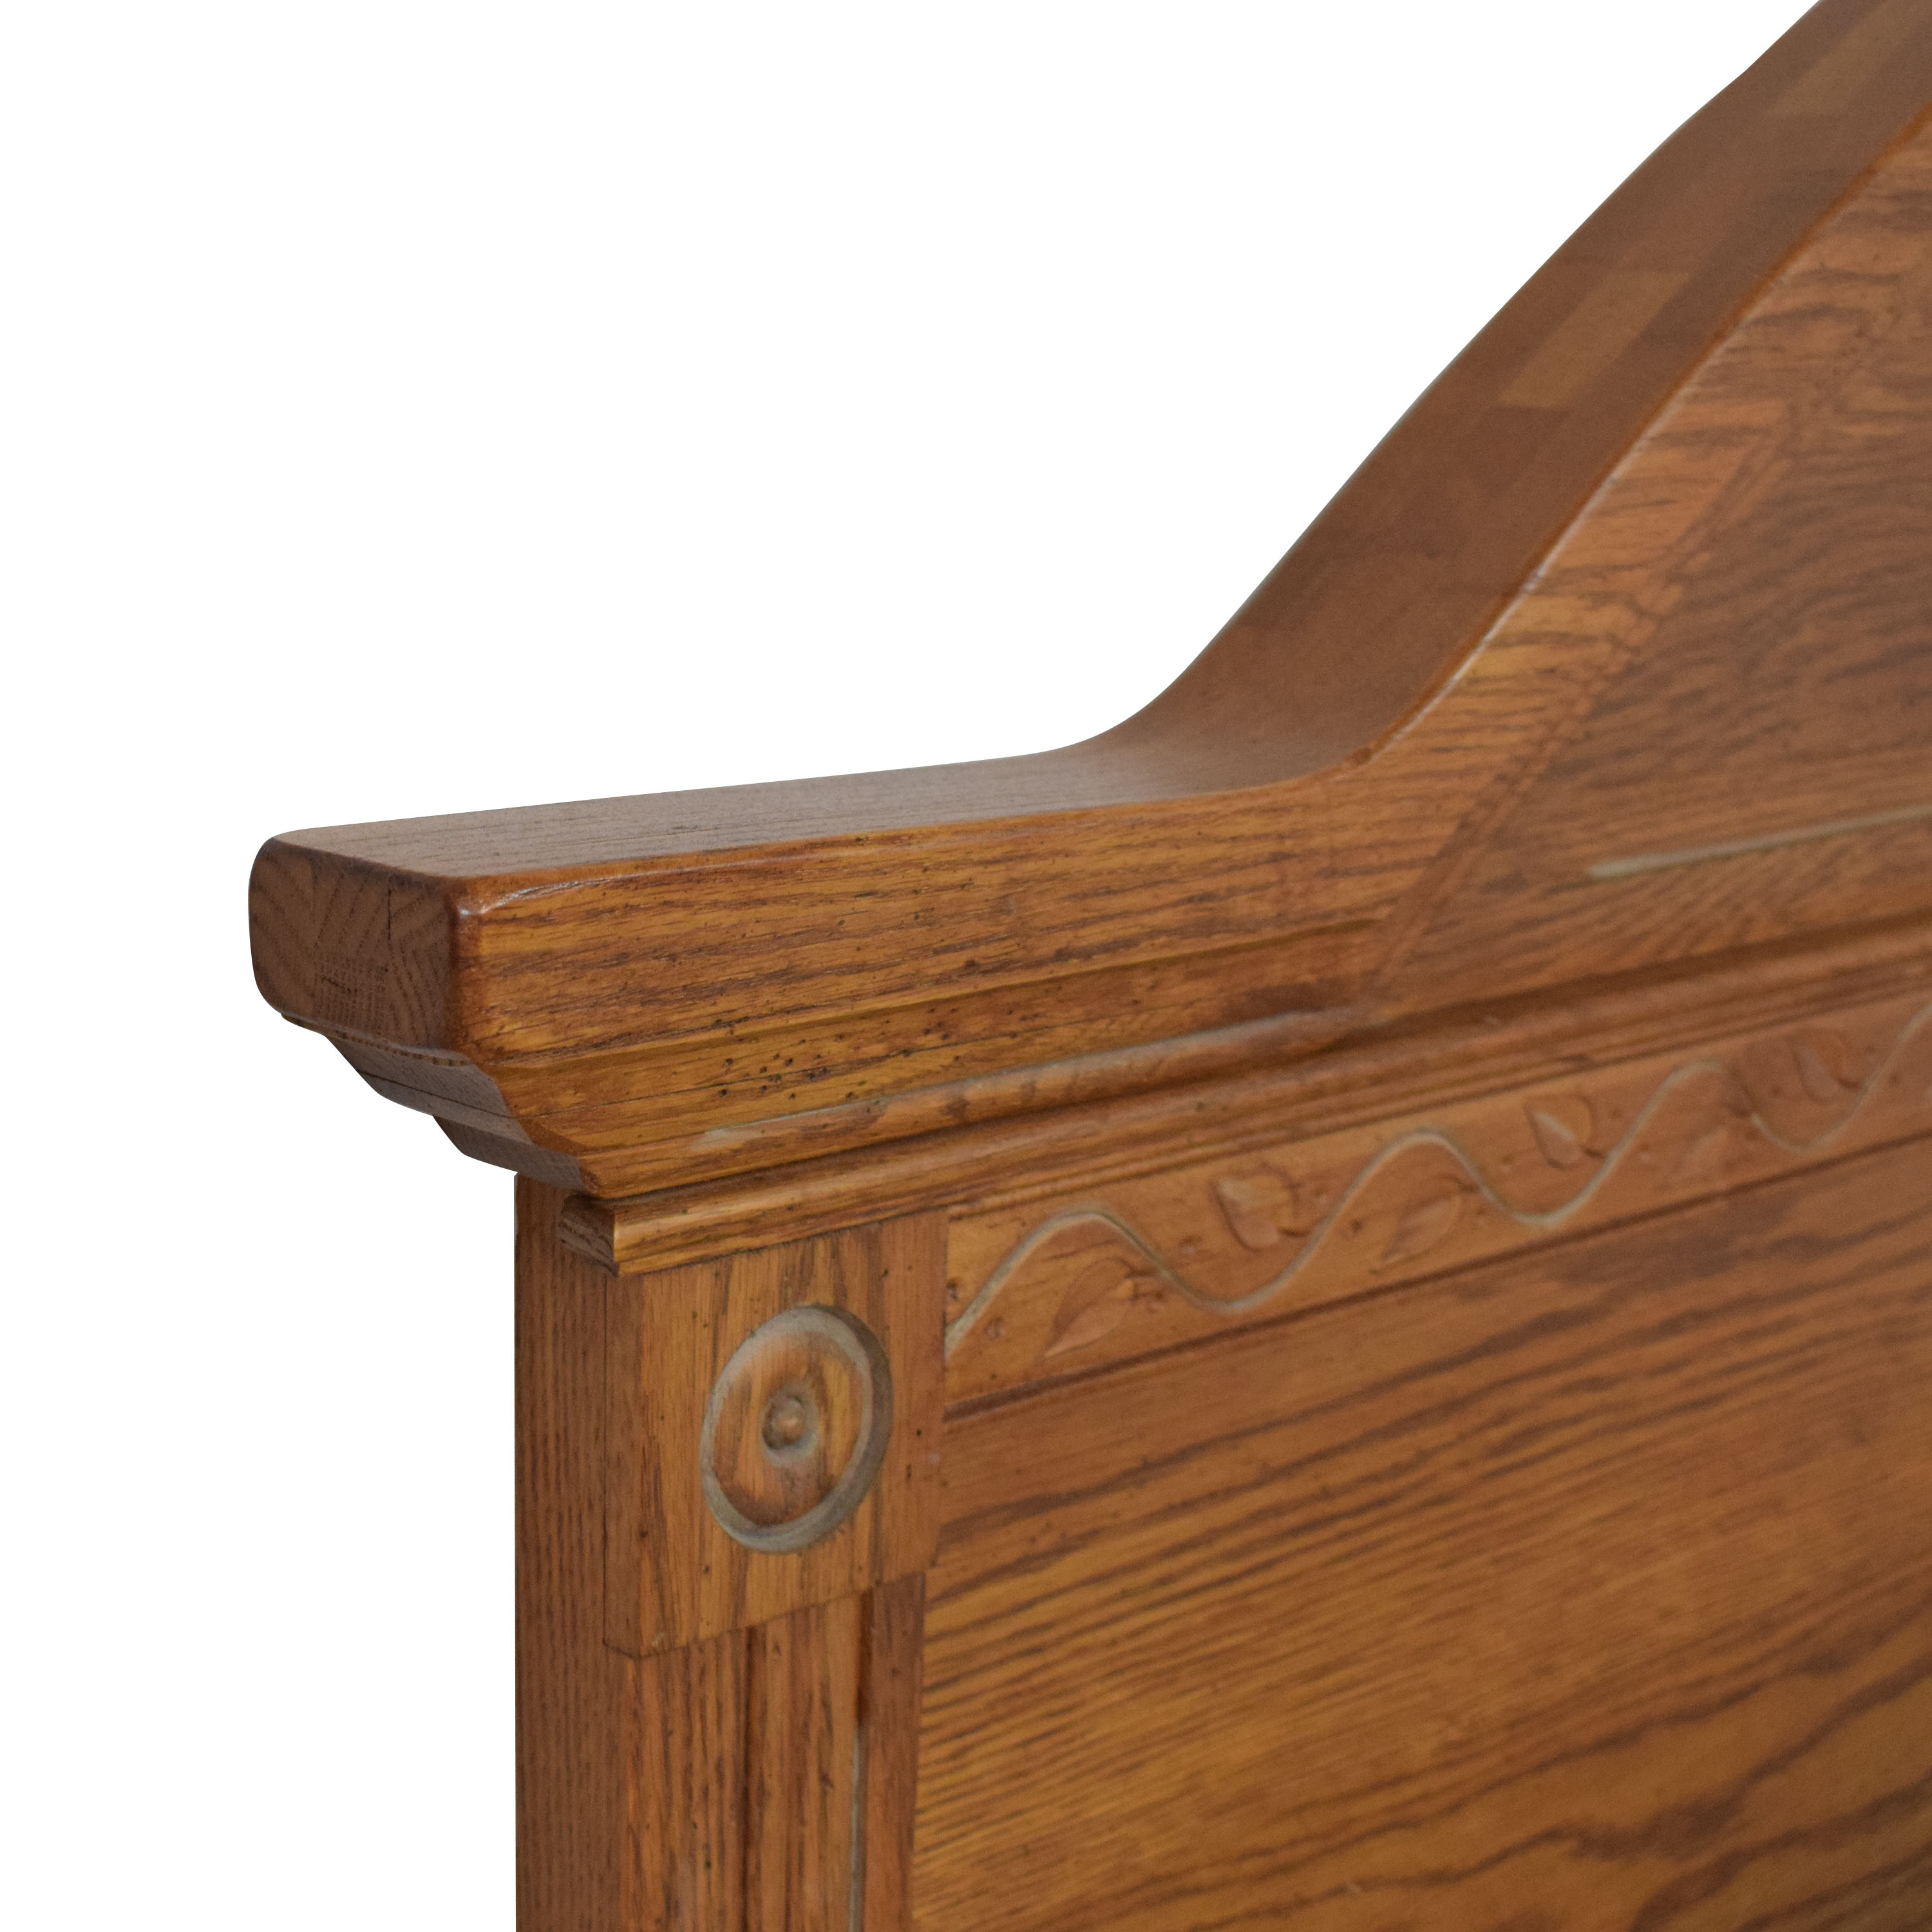 Broyhill Furniture Broyhill King Bedframe for sale